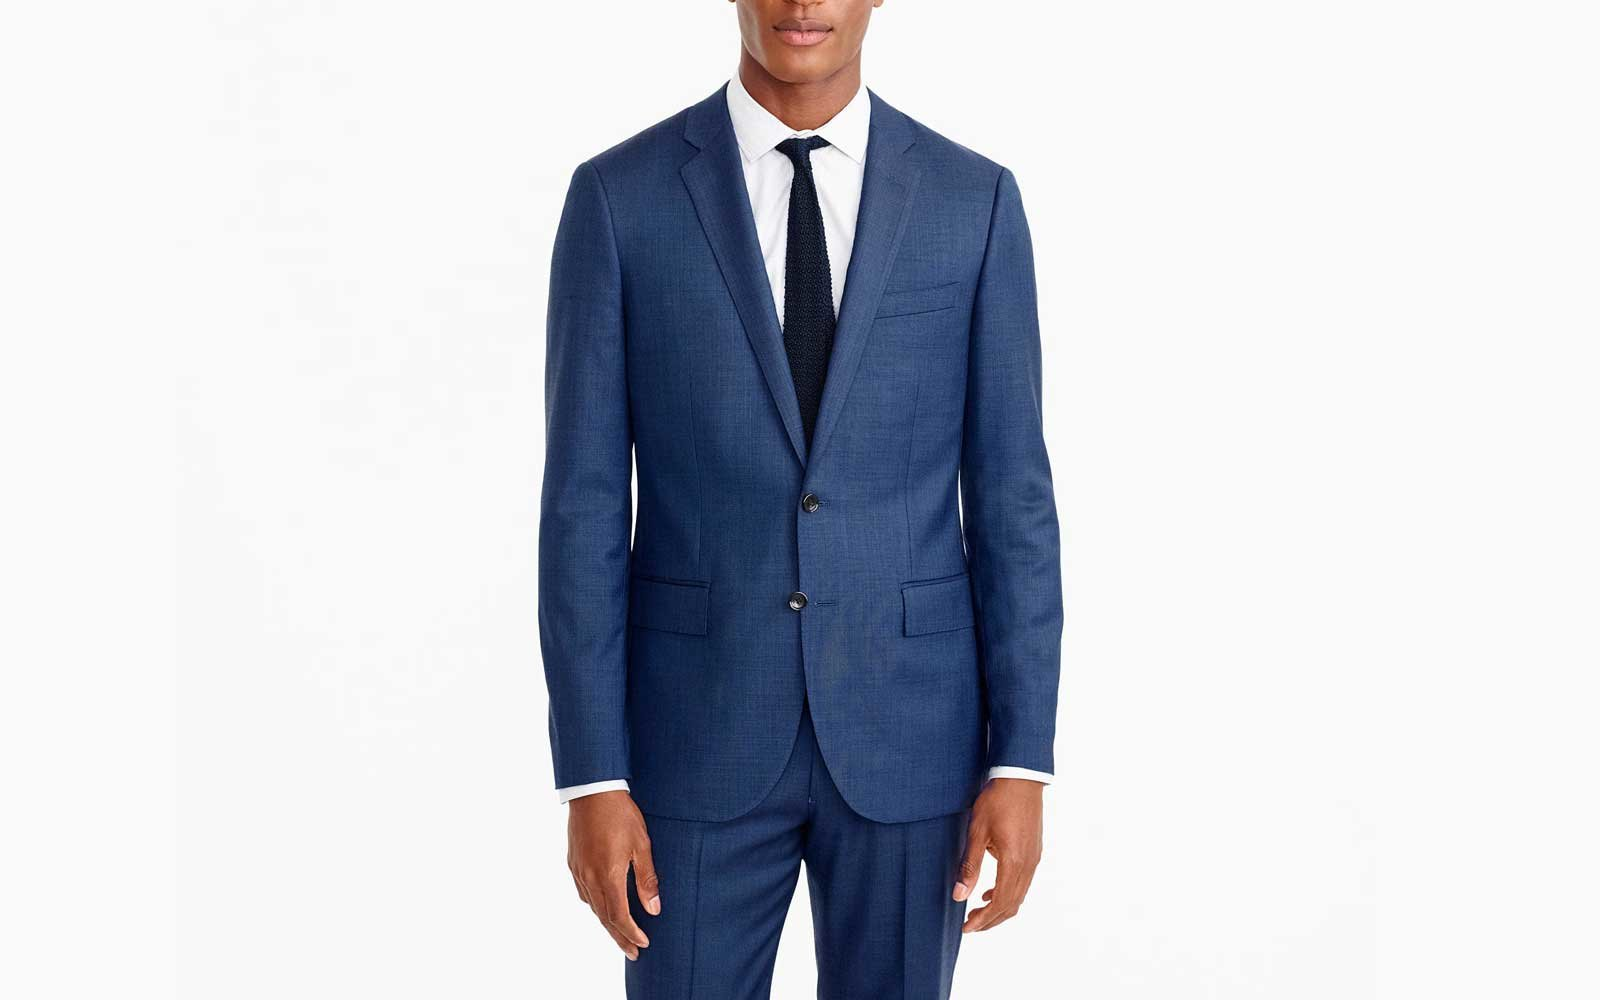 The 13 Best Travel Suits for Men